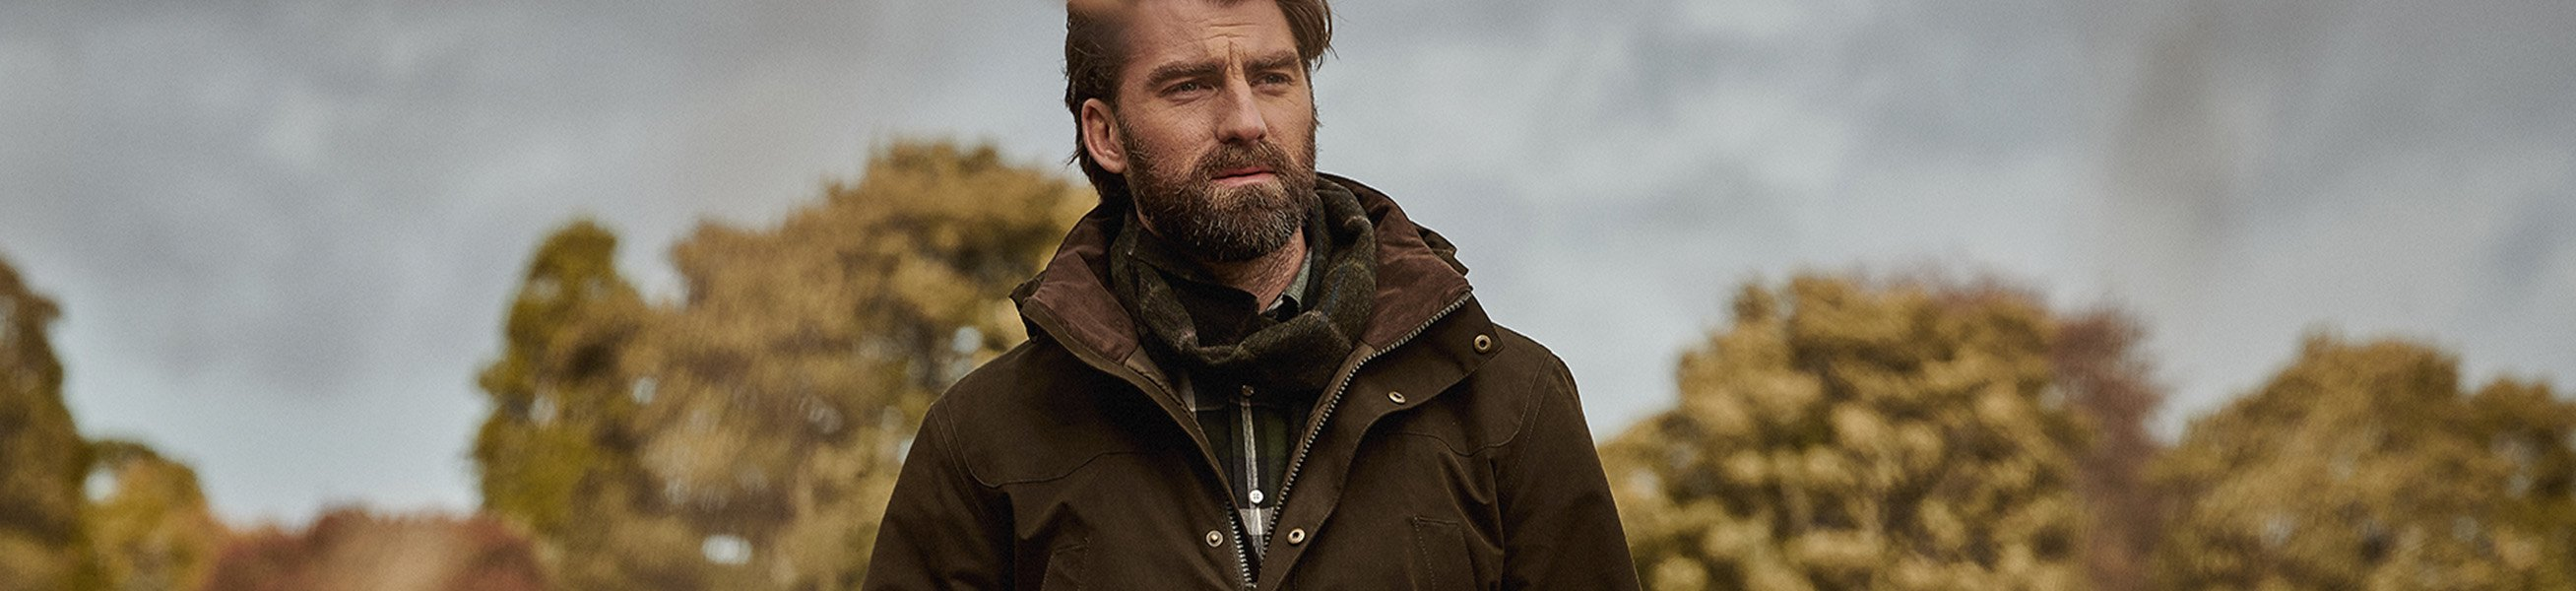 Barbour jacken 2020